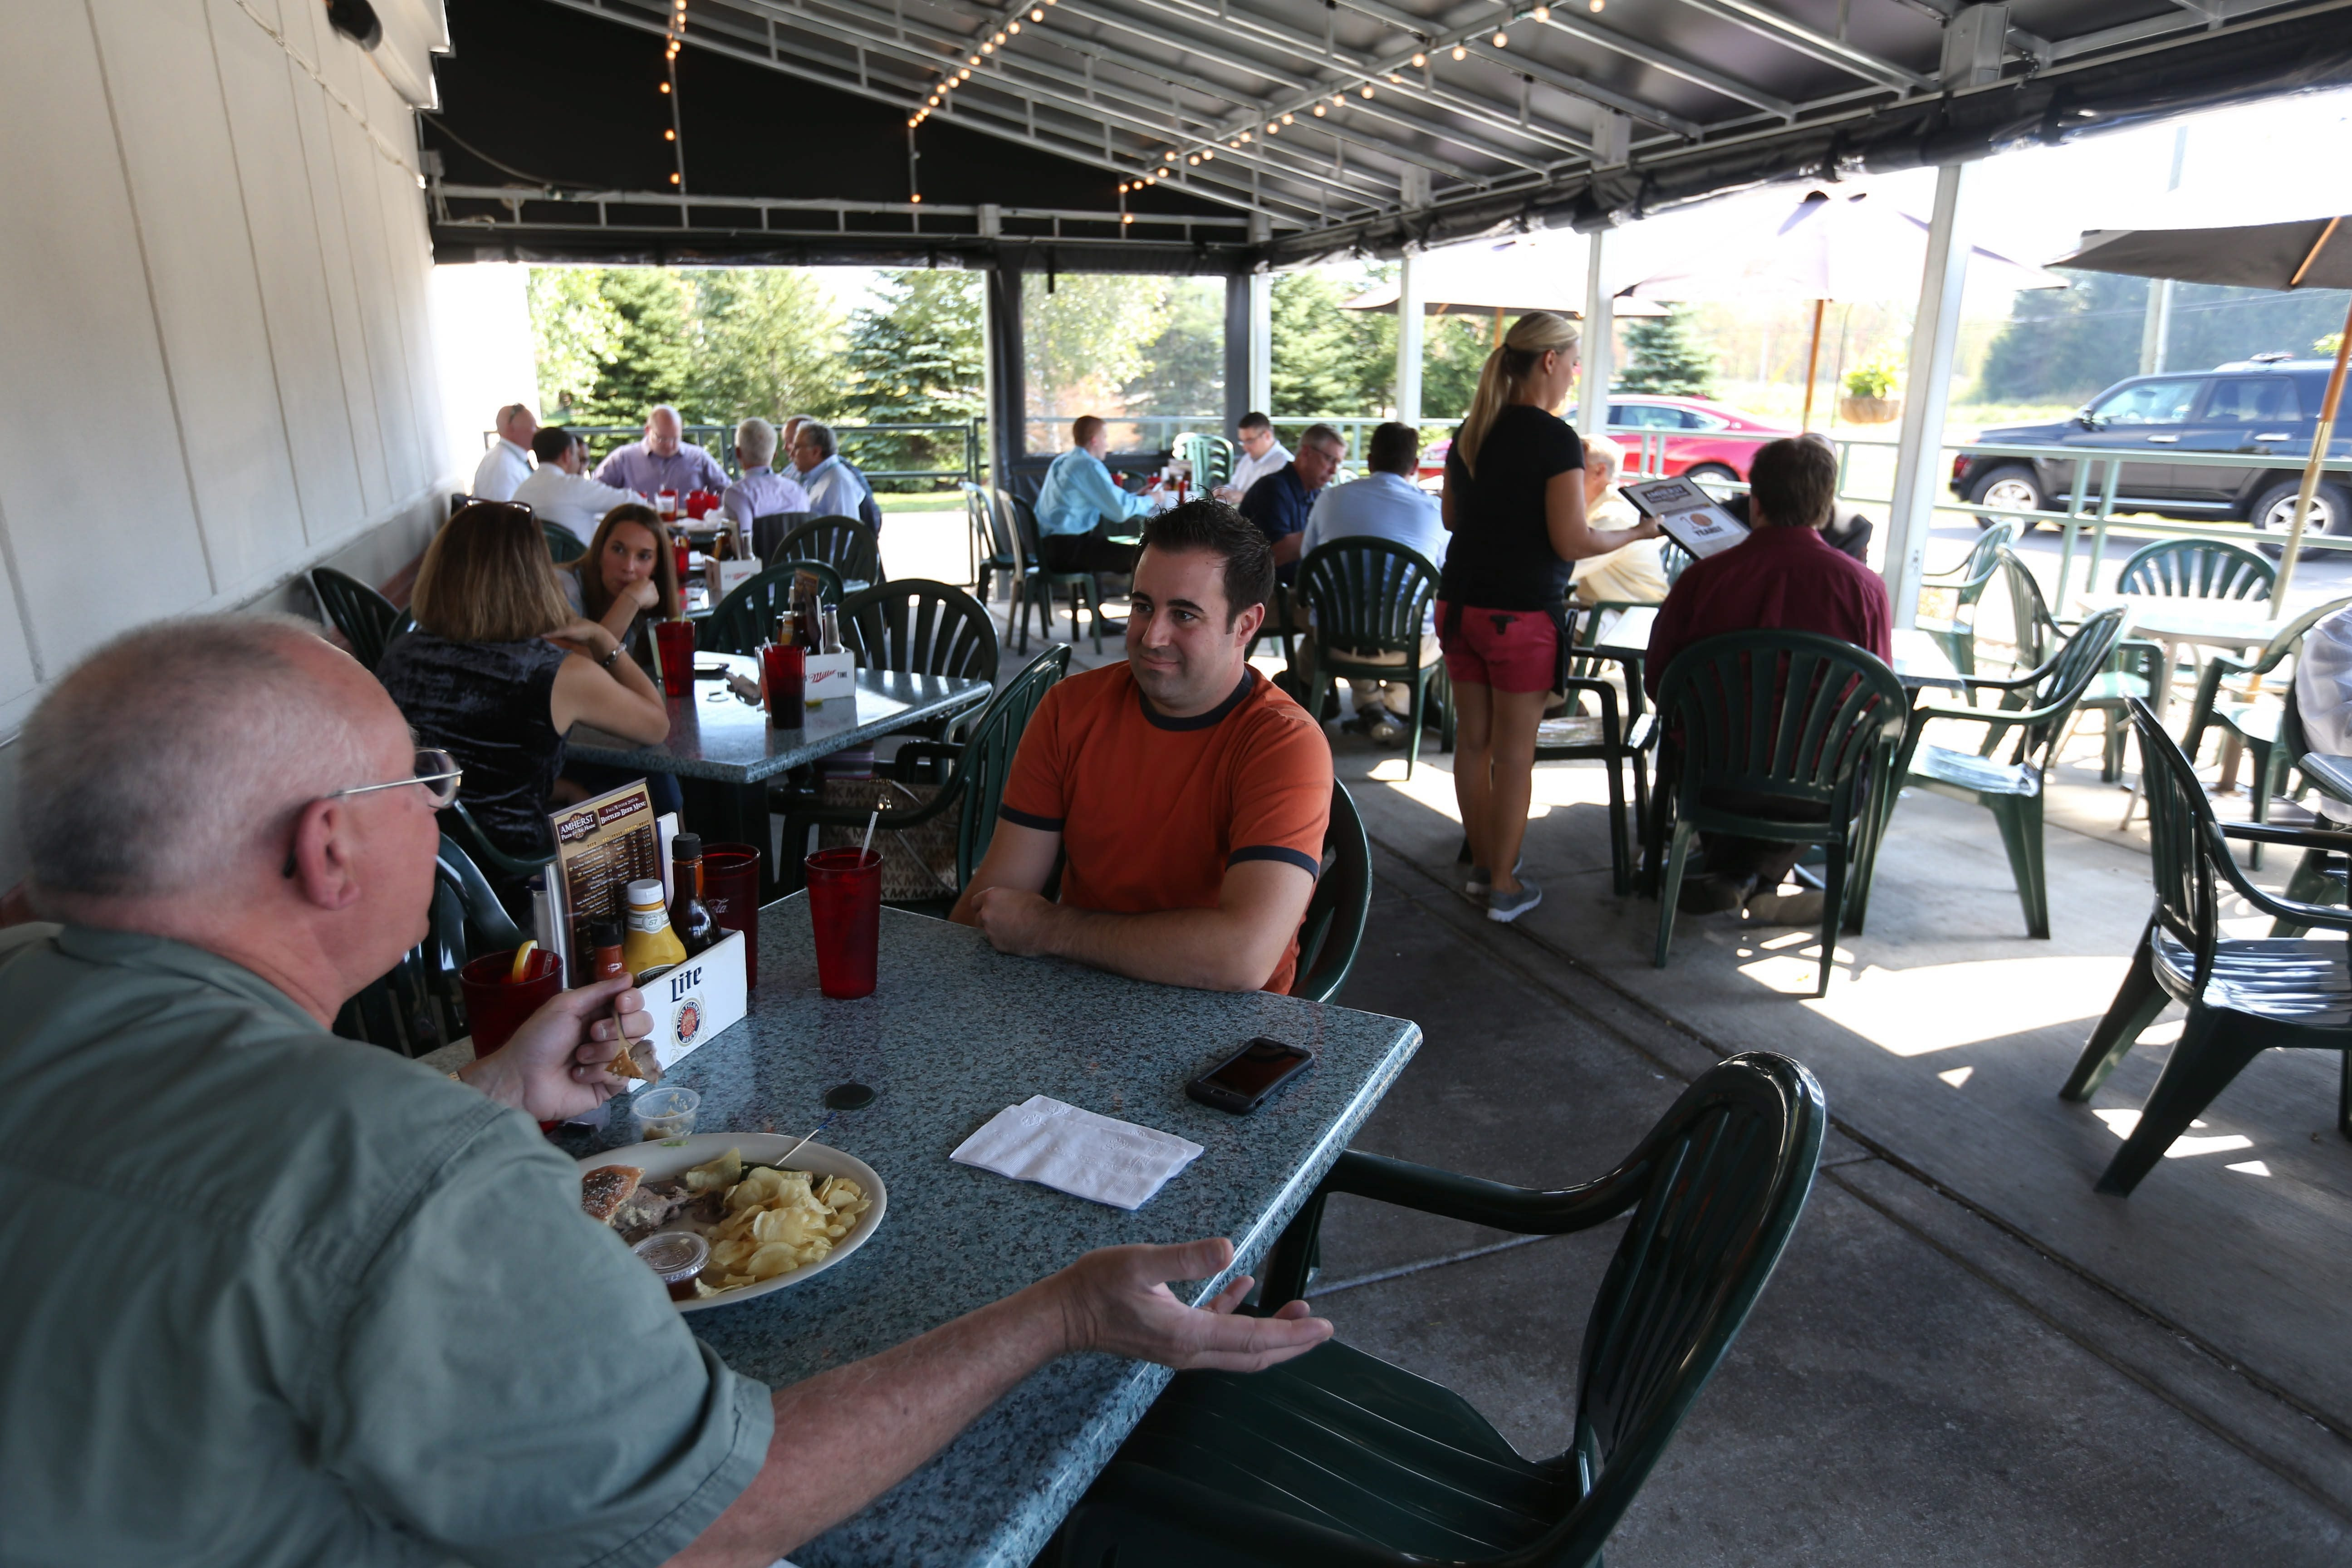 """Amherst Pizza & Ale House has a folder full of ideas for breakfast pizzas, but don't look for them on the menu. """"We don't open for brunch at all,"""" said owner John Bona III, """"and the main reason for that is most people want to enjoy a mimosa or a bloody mary with their brunch."""" (Sharon Cantillon/News file photo)"""